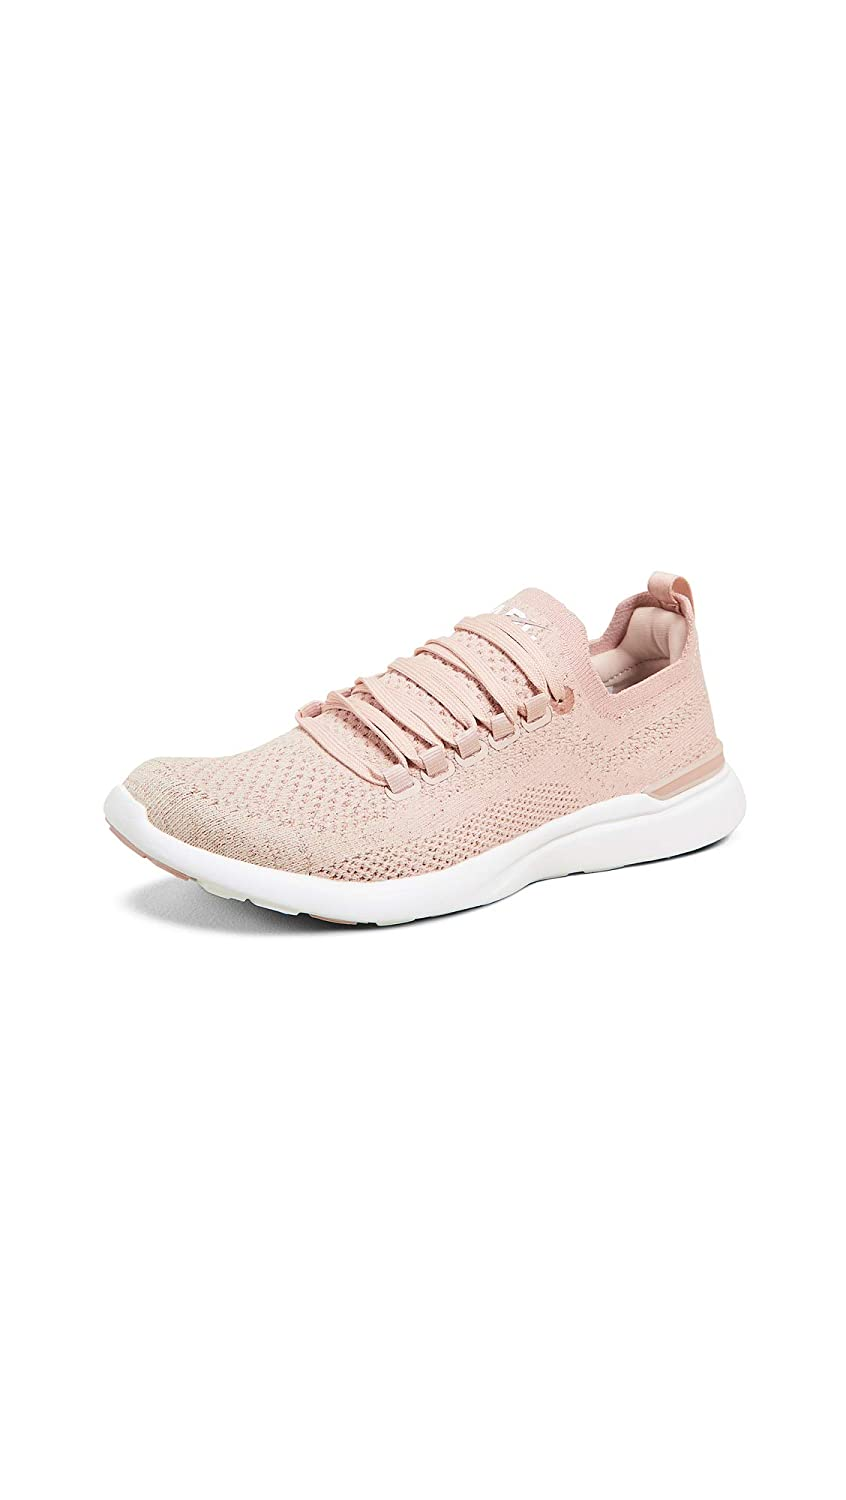 pink Dust pink gold White APL  Athletic Propulsion Labs Women's Techloom Breeze Sneakers